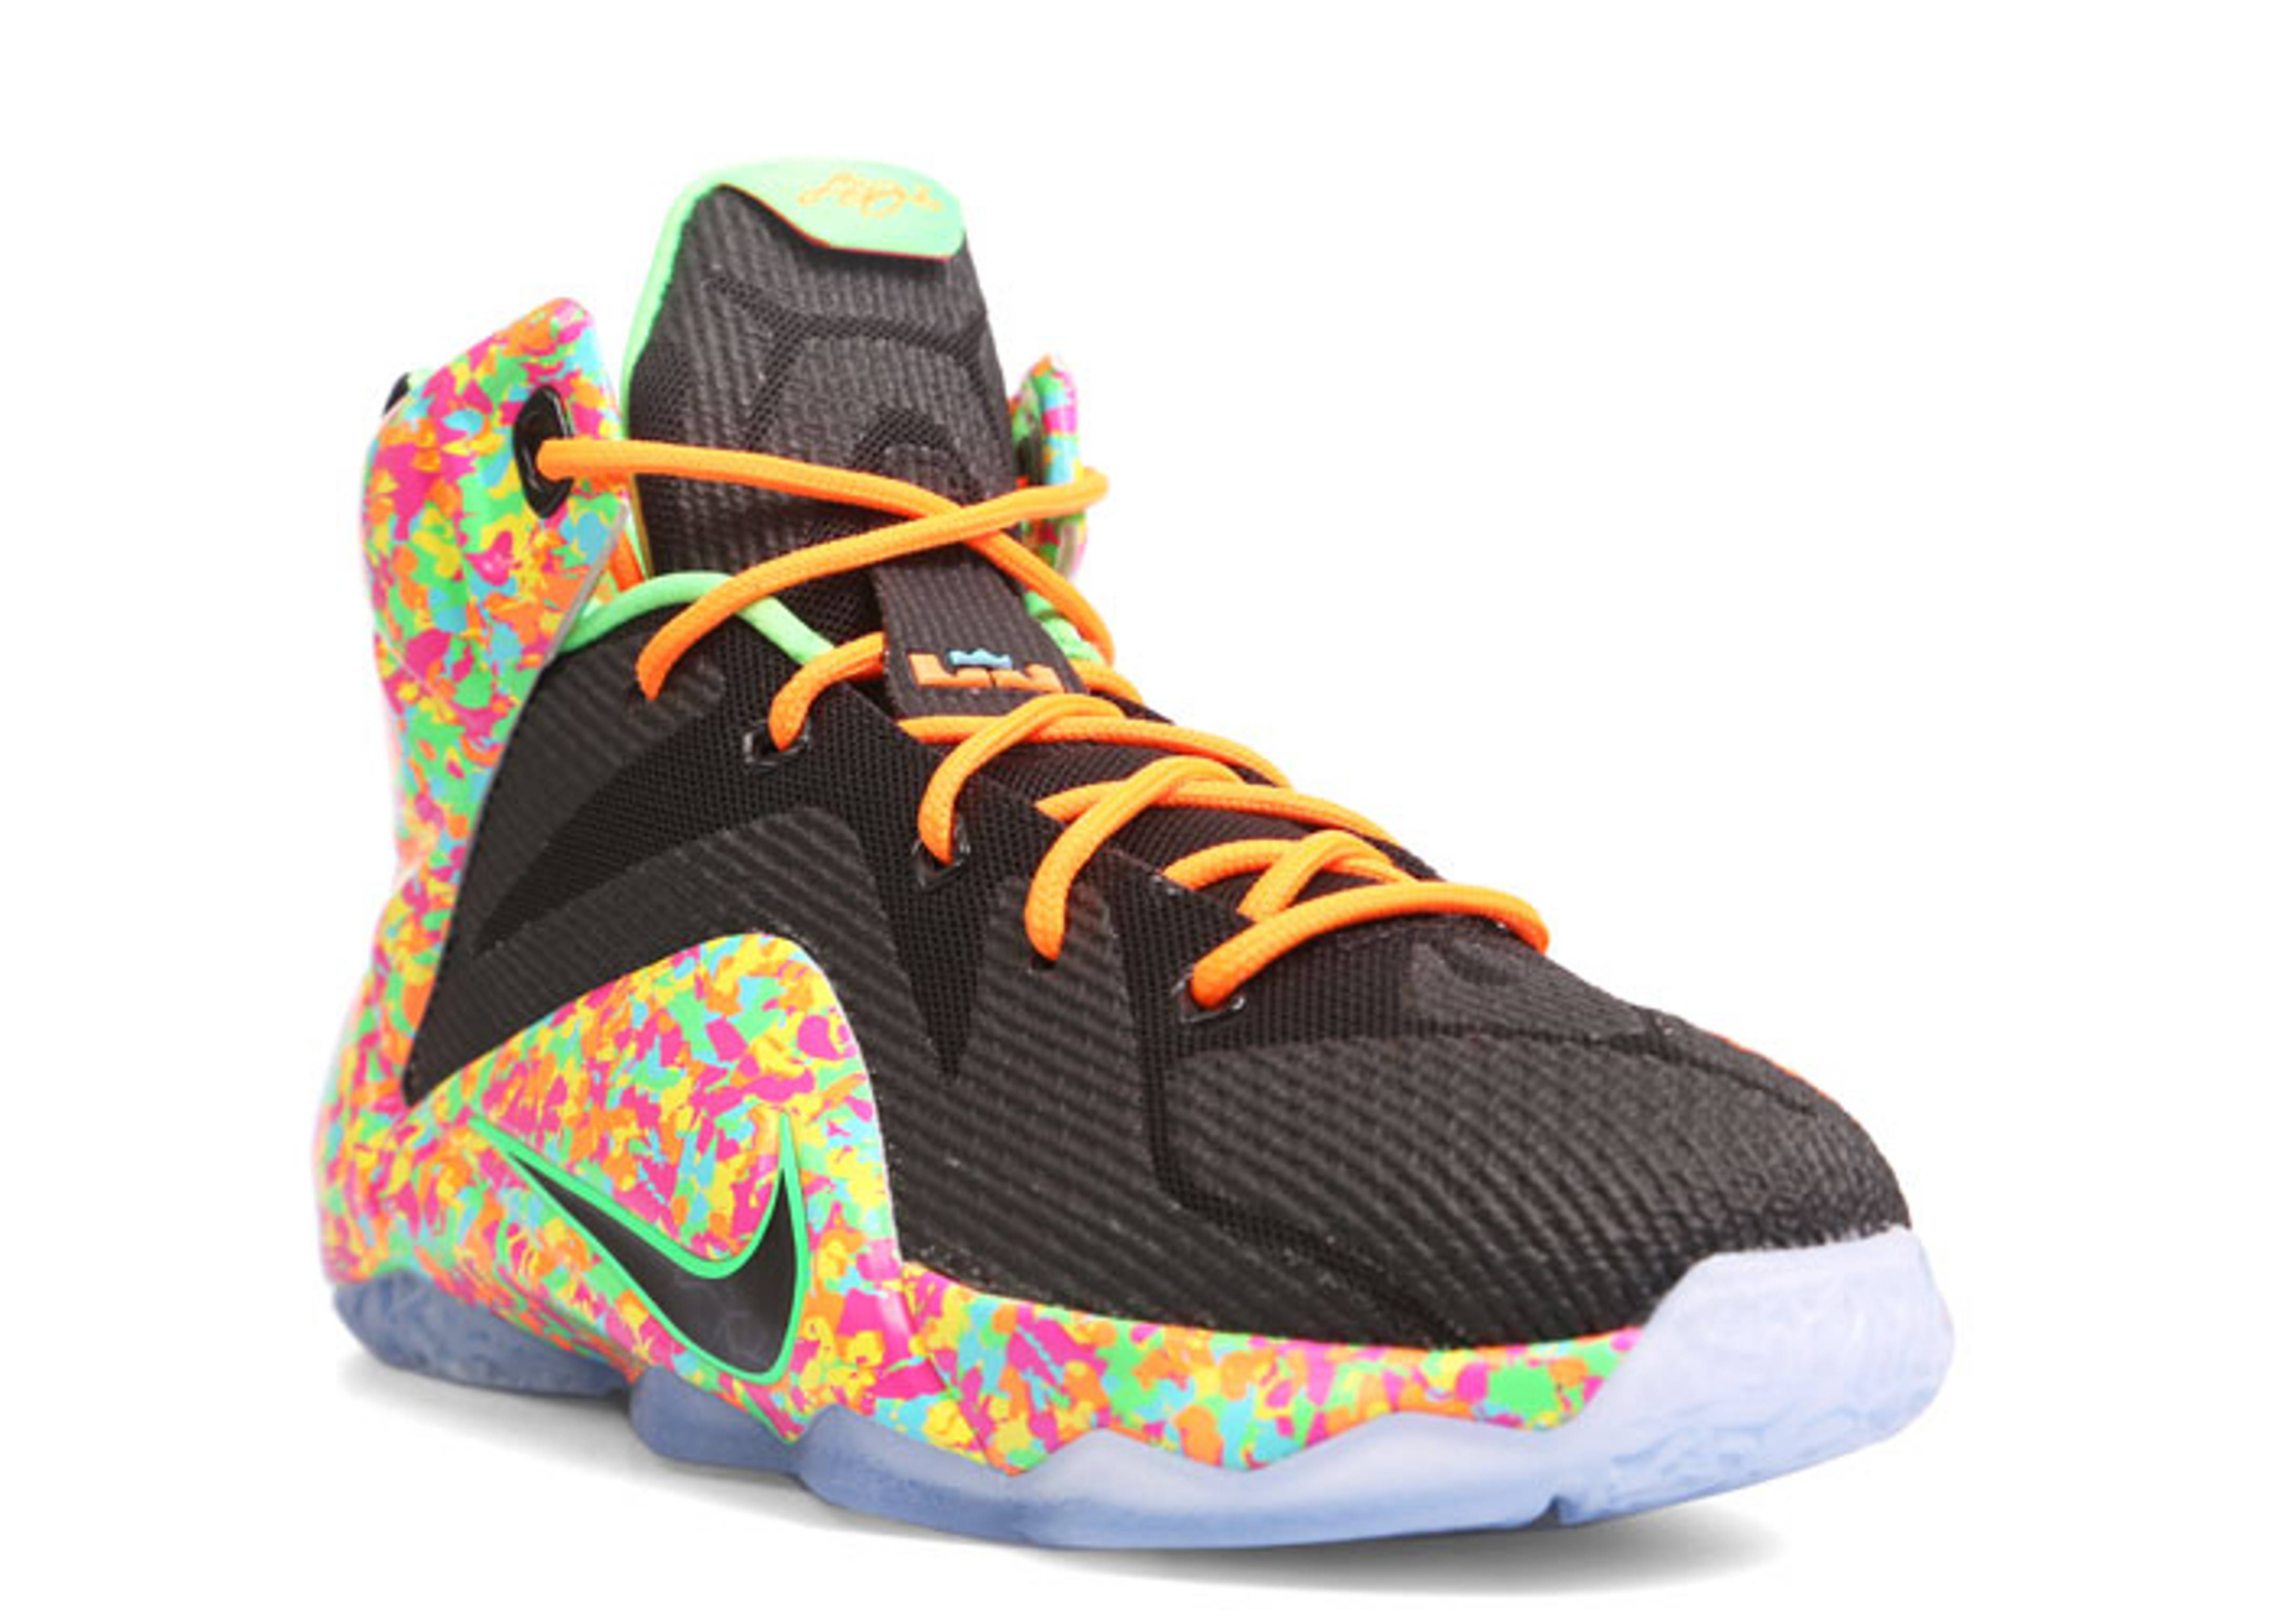 new product f74e5 992cc promo code for lebron 12 fruity pebbles brown b834e be298